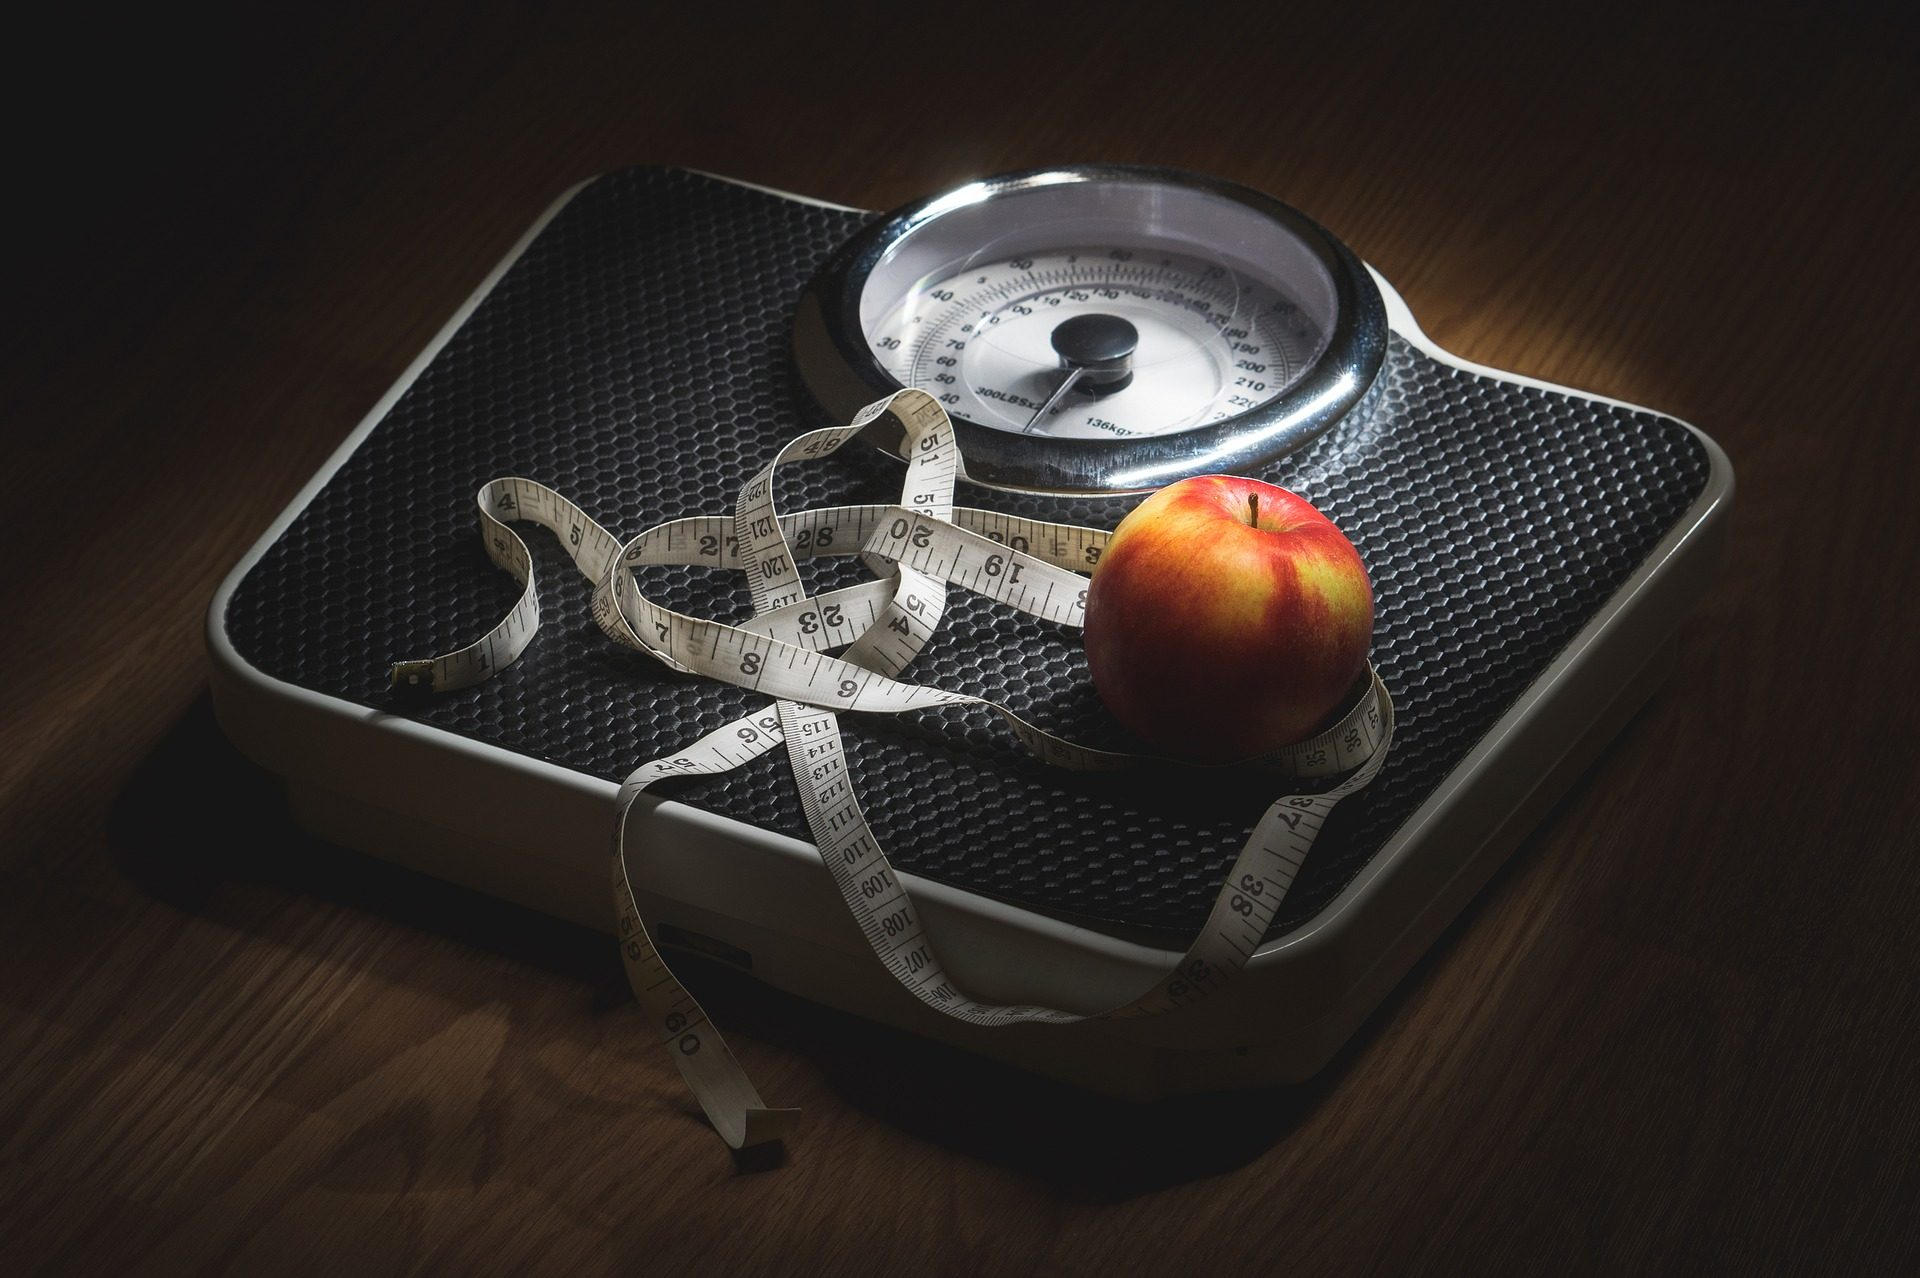 Weighing scales, an apple and a tape measure